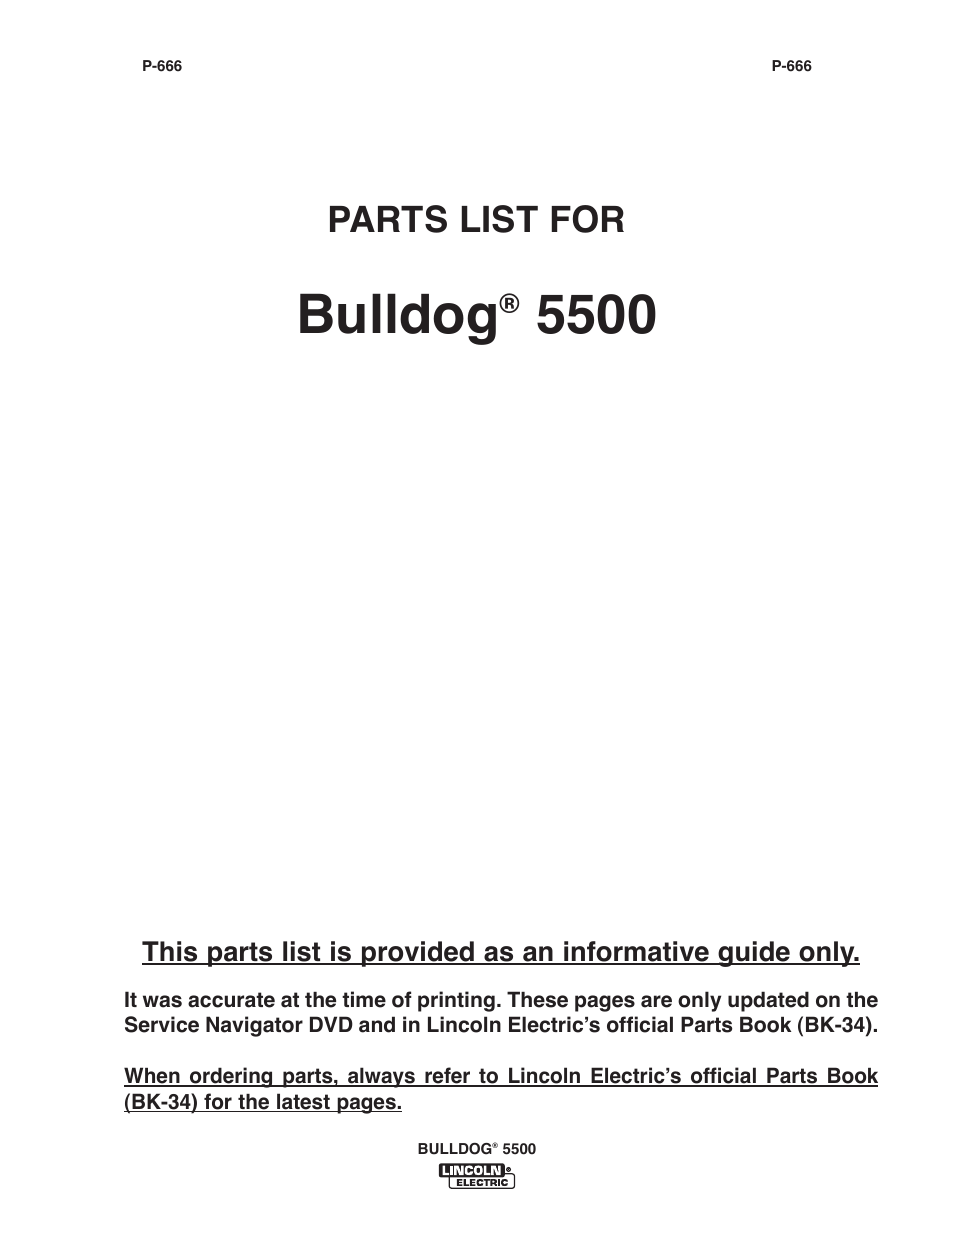 hight resolution of bulldog parts list for lincoln electric im10074 bulldog 5500 user manual page 43 56